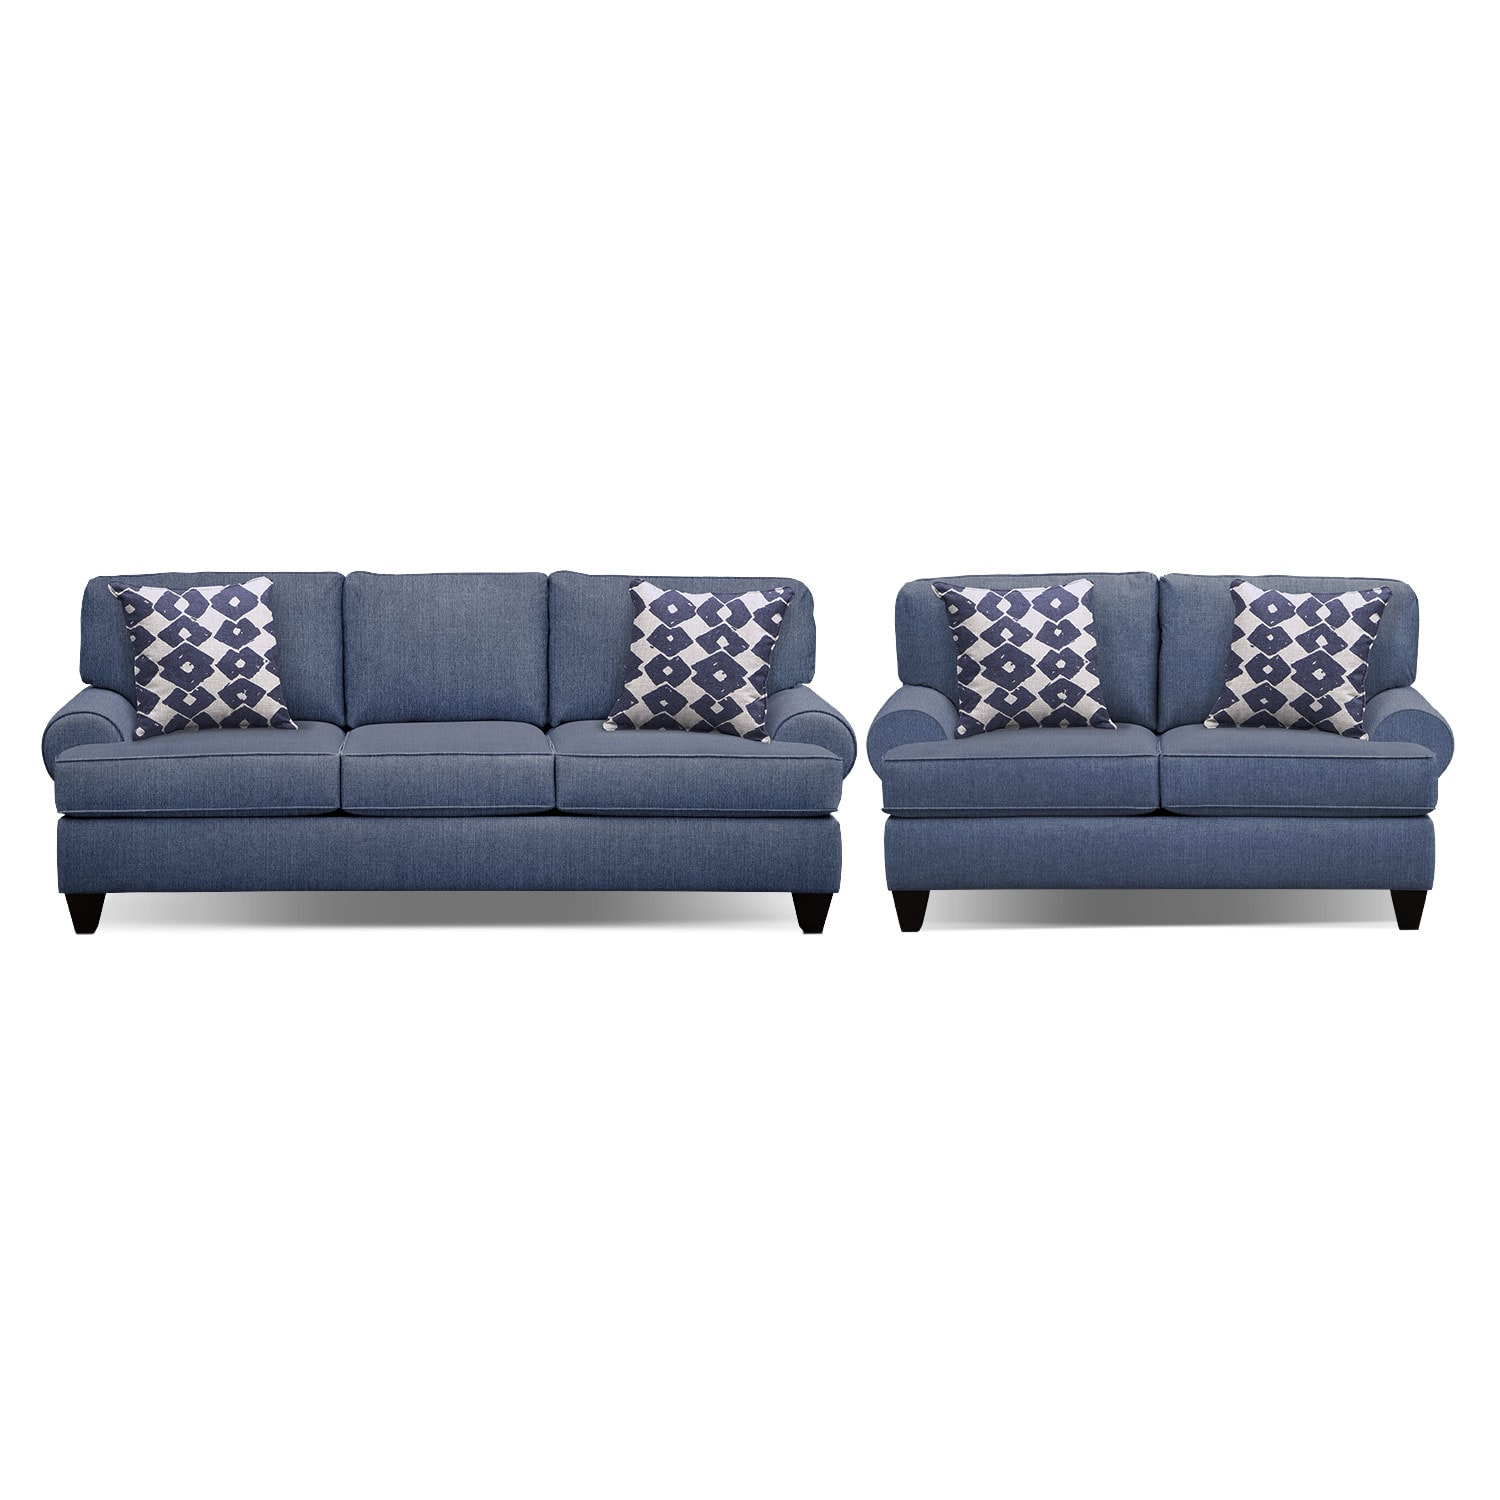 "Living Room Furniture - Bailey Blue 91"" Innerspring Sleeper Sofa and 67"" Sofa Set"